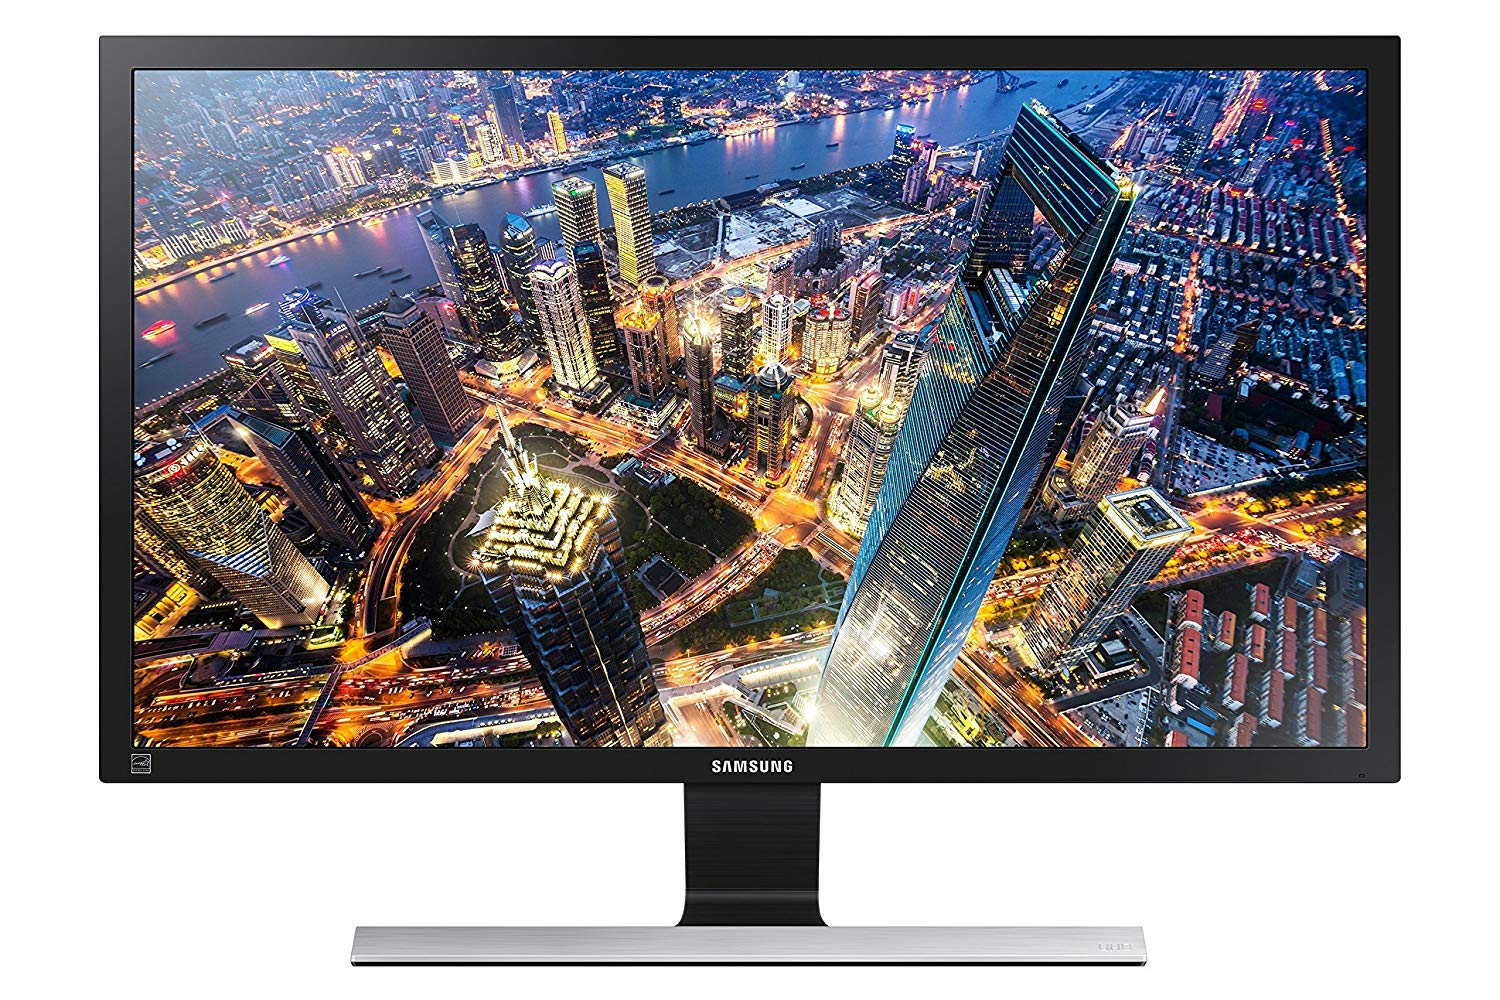 40% off Samsung 28-Inch LCD/LED Monitor